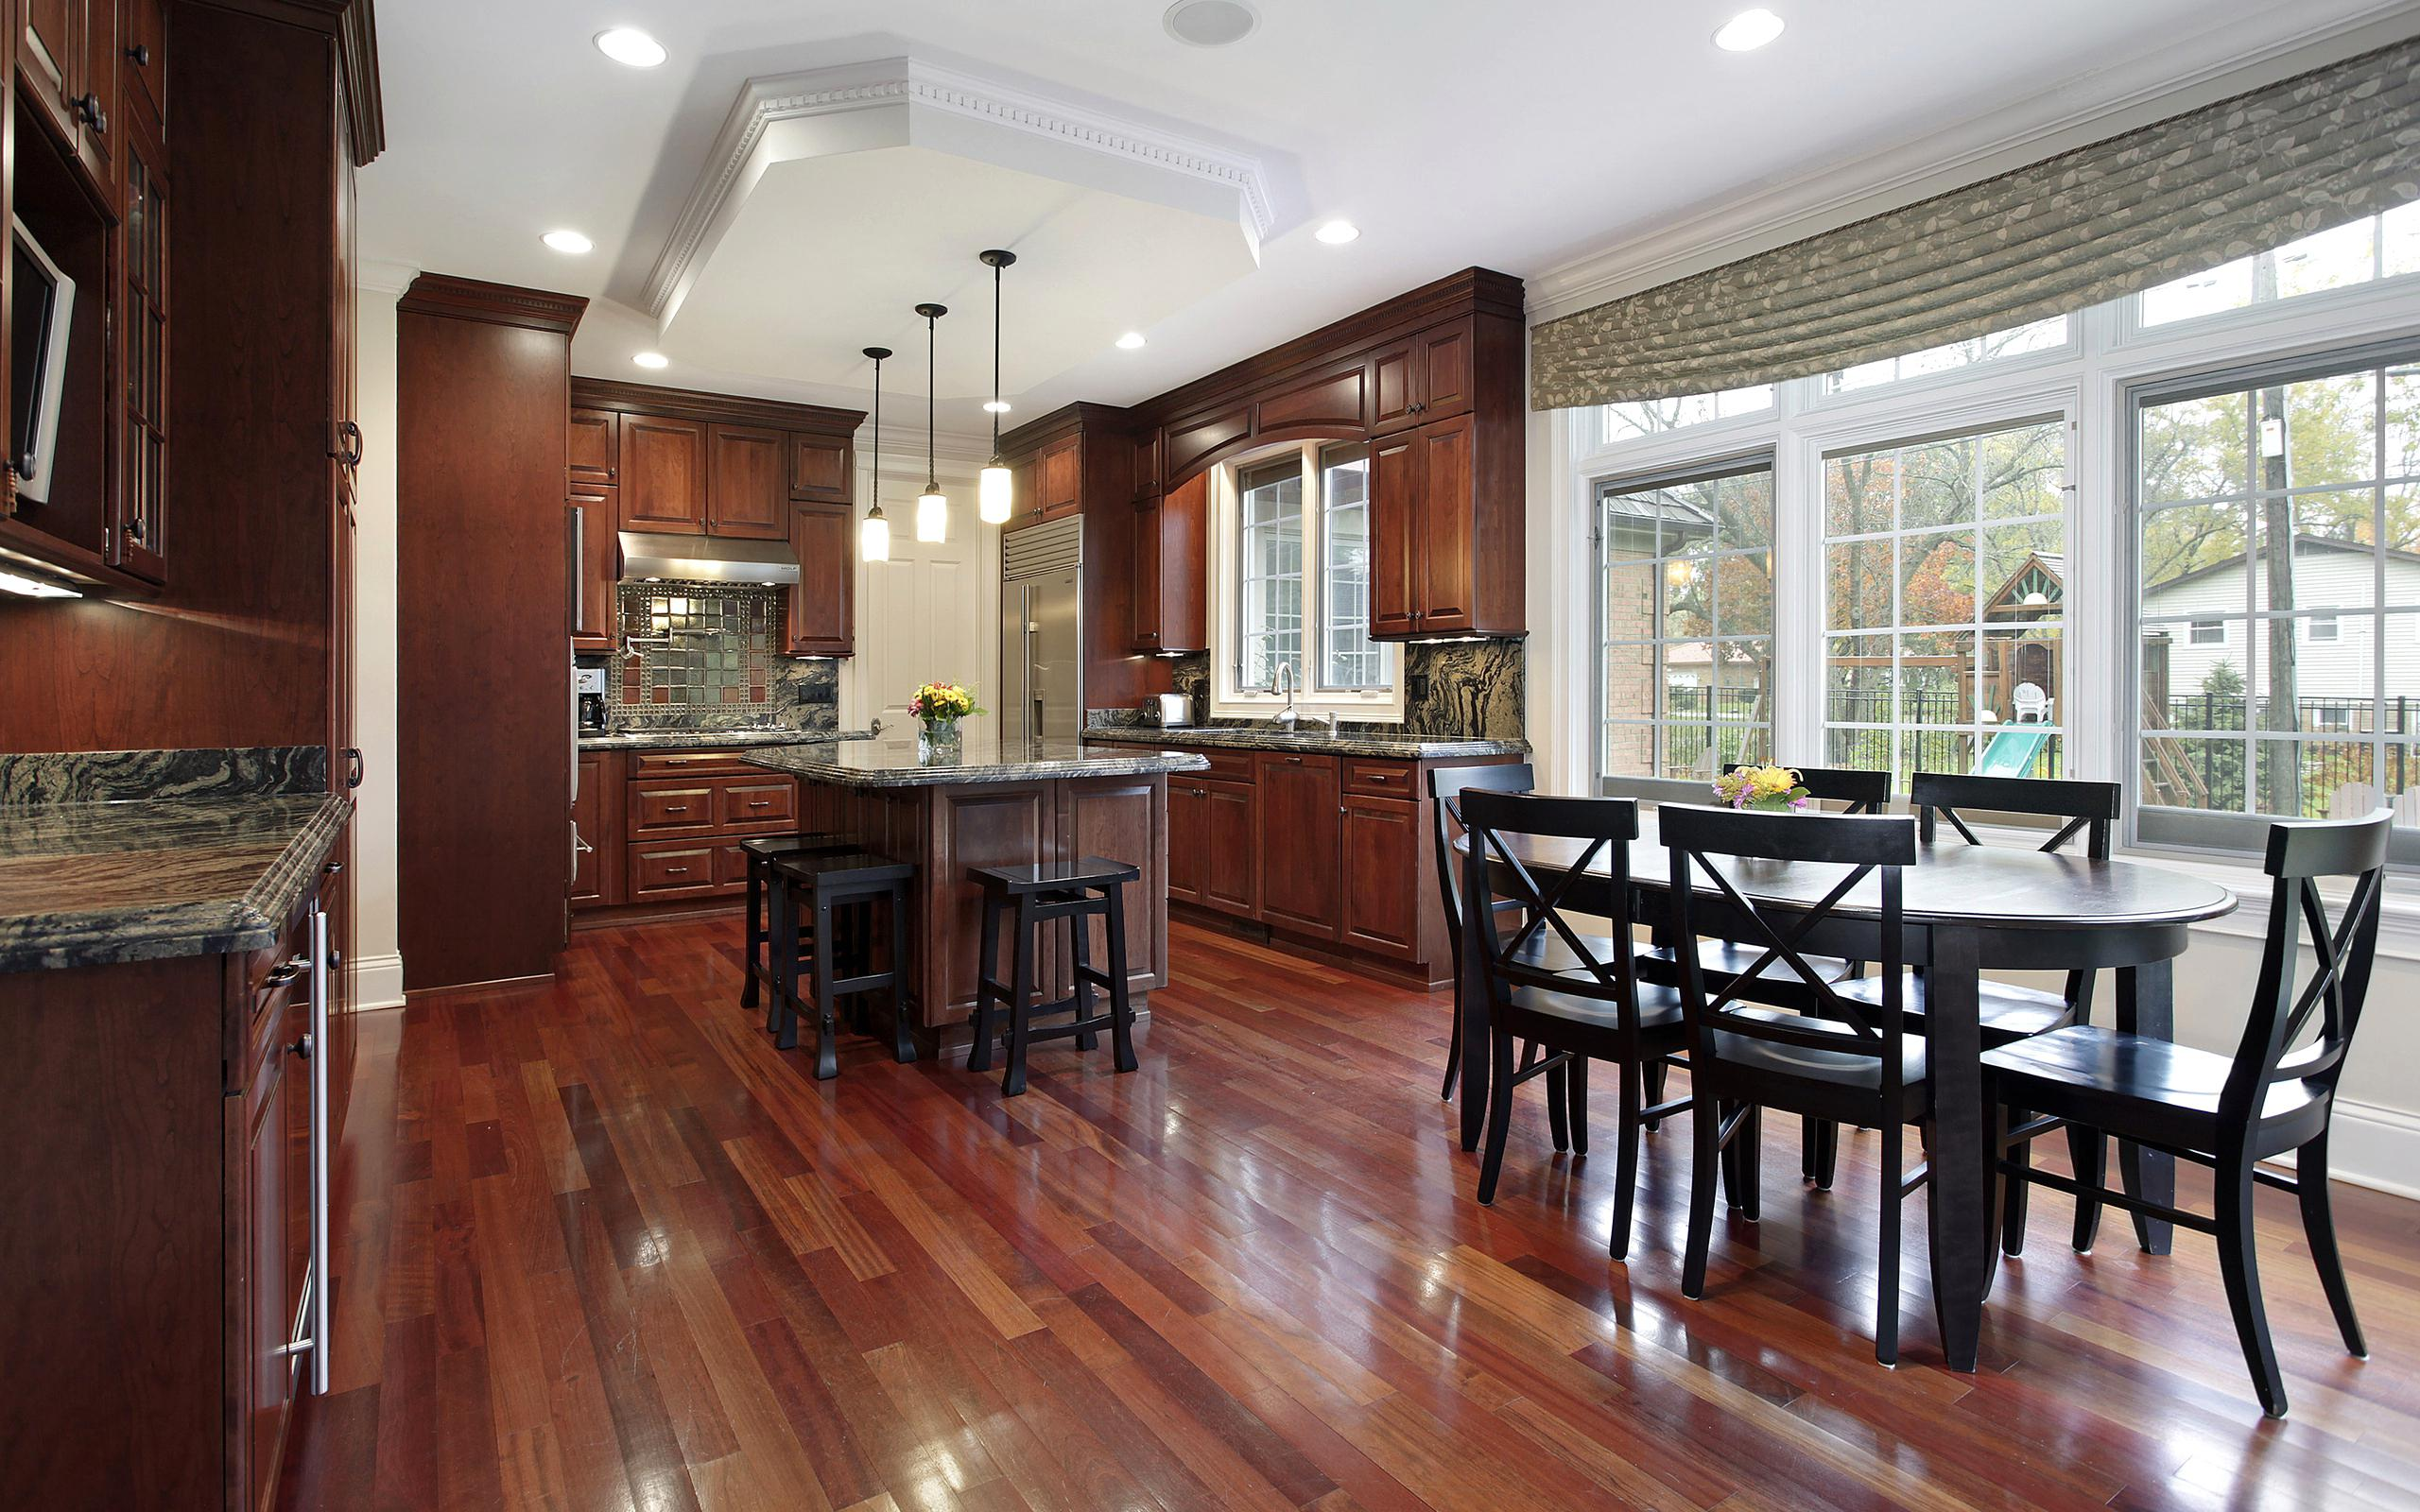 brazilian cherry wood floor kitchen staggering brazilian cherry wood kitchen floor artsfon.com .jpg ONVWRYL